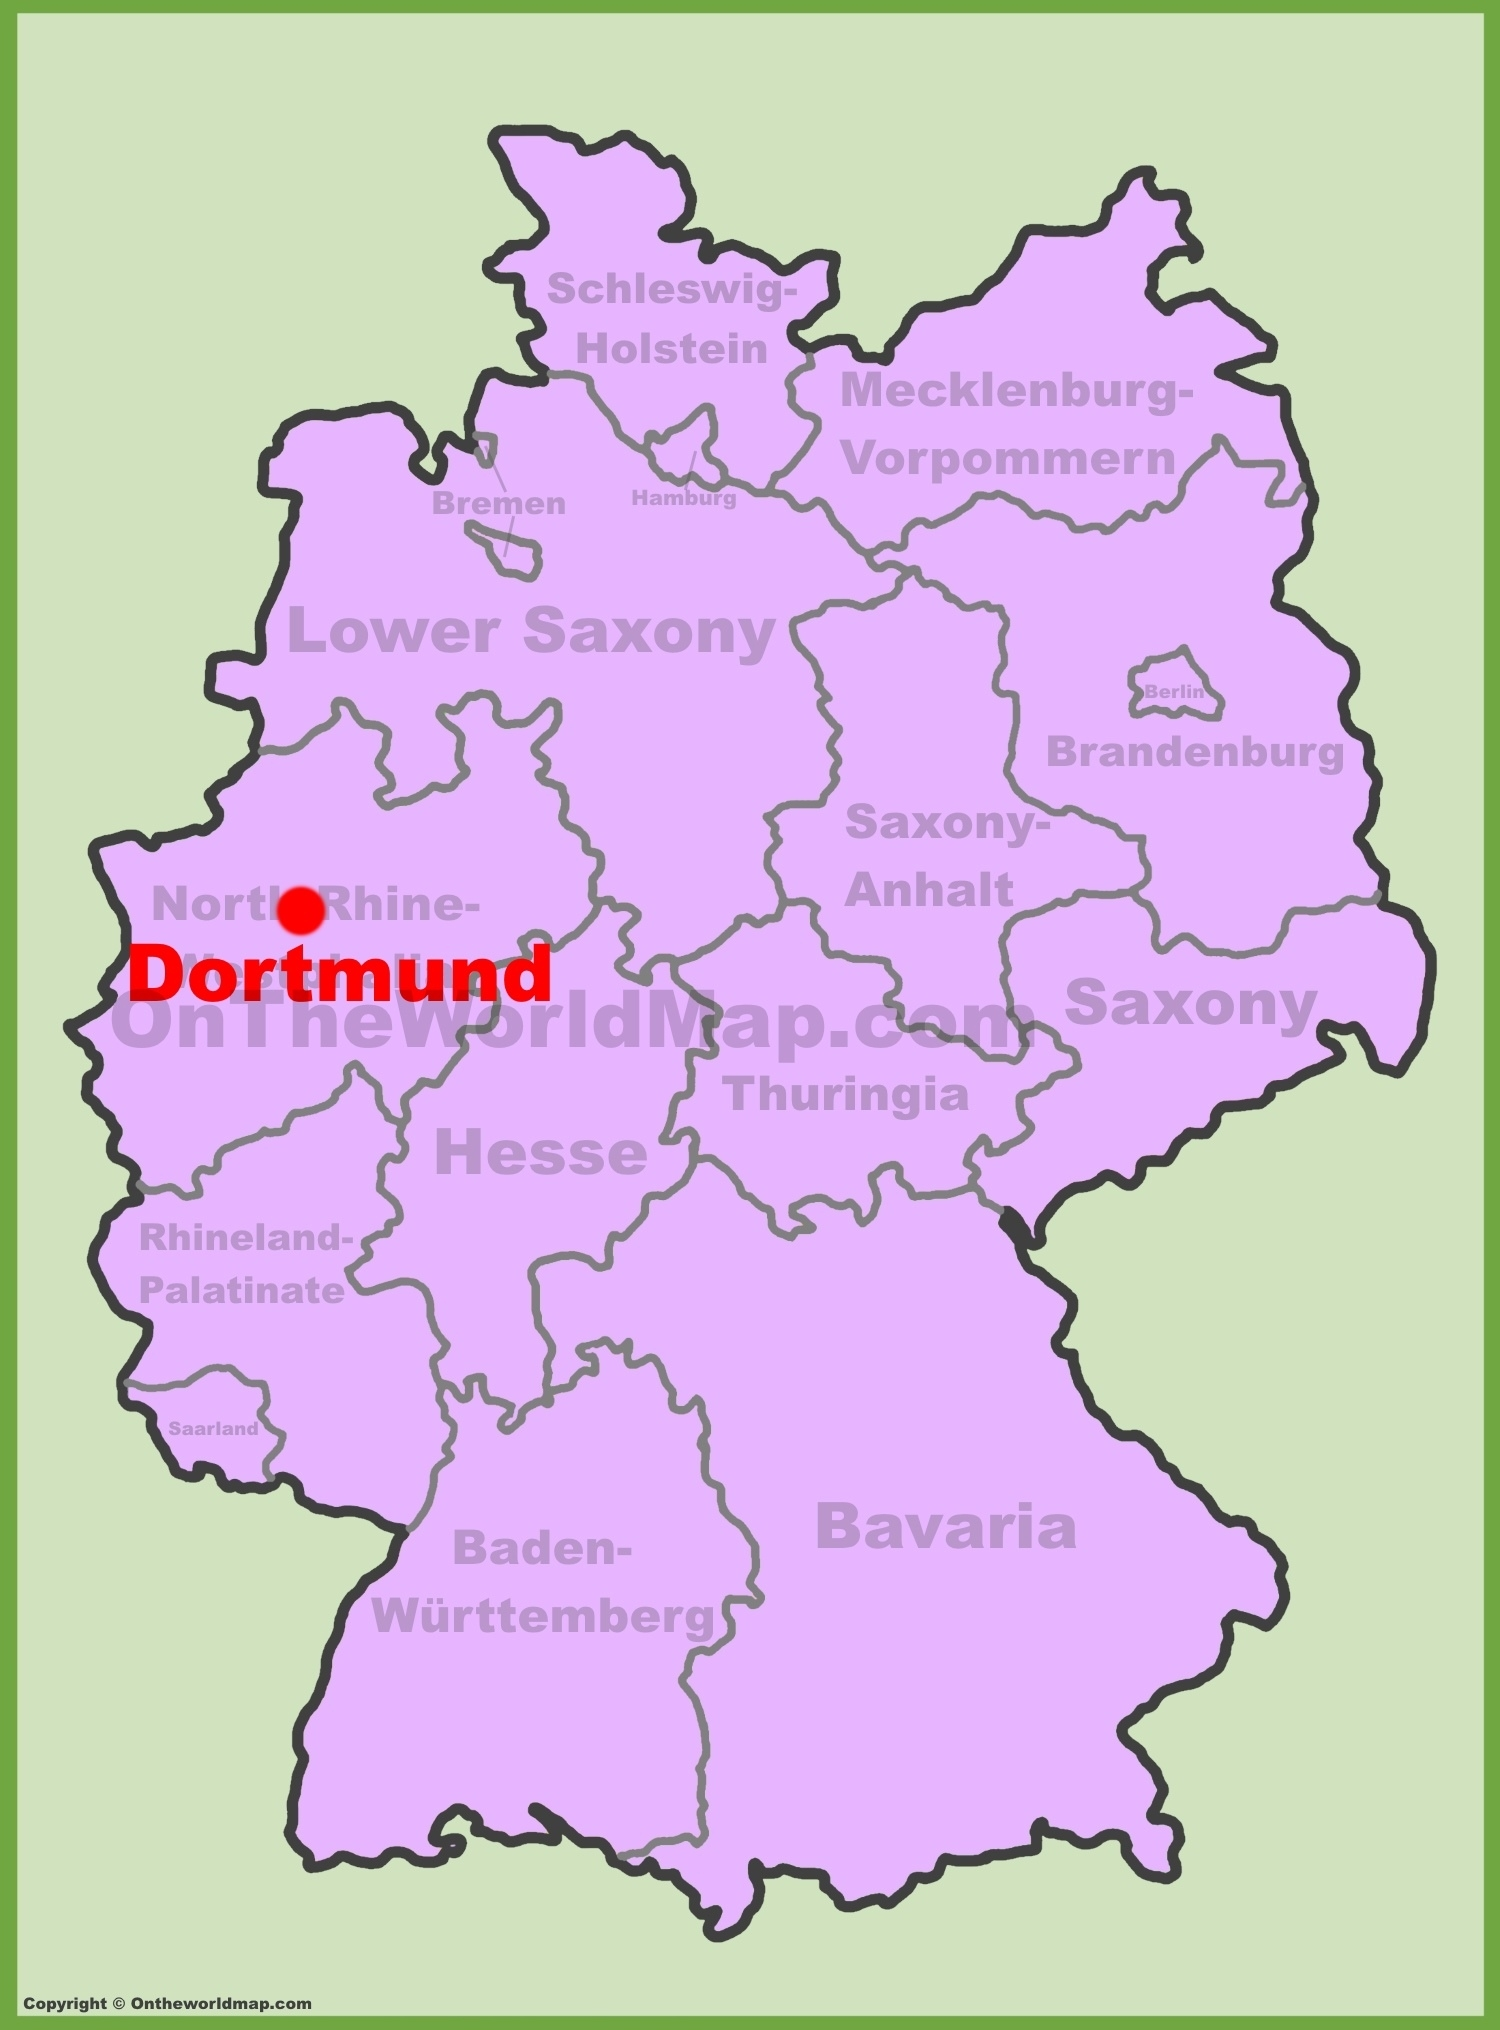 Dortmund Location On The Germany Map within Map Of Germany Showing Dortmund